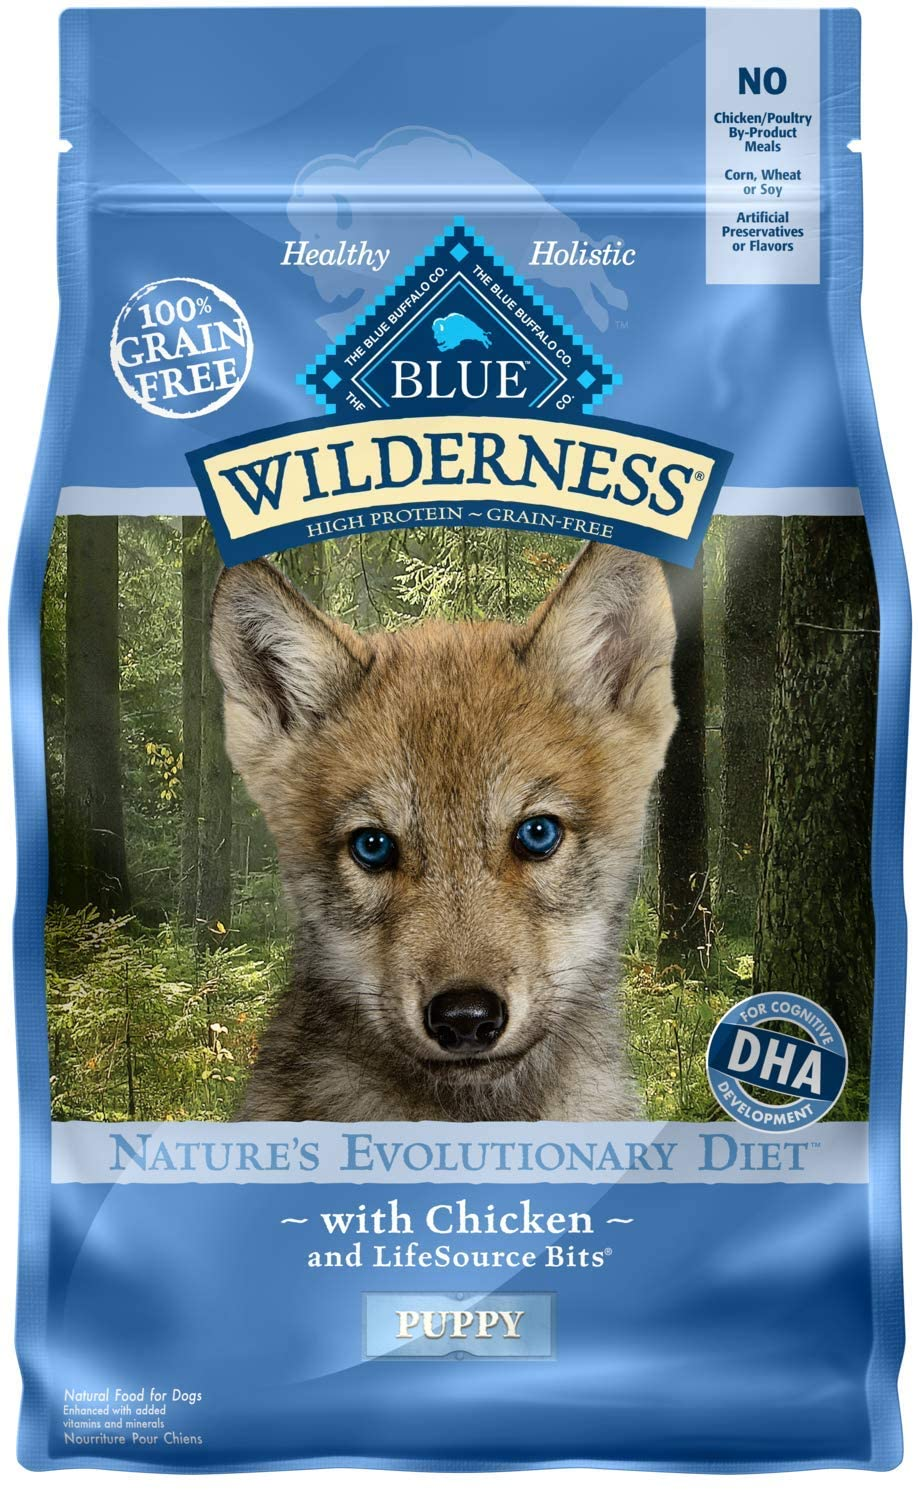 Blue Buffalo Wilderness High Protein Grain Free, Natural Puppy Dry Dog Food